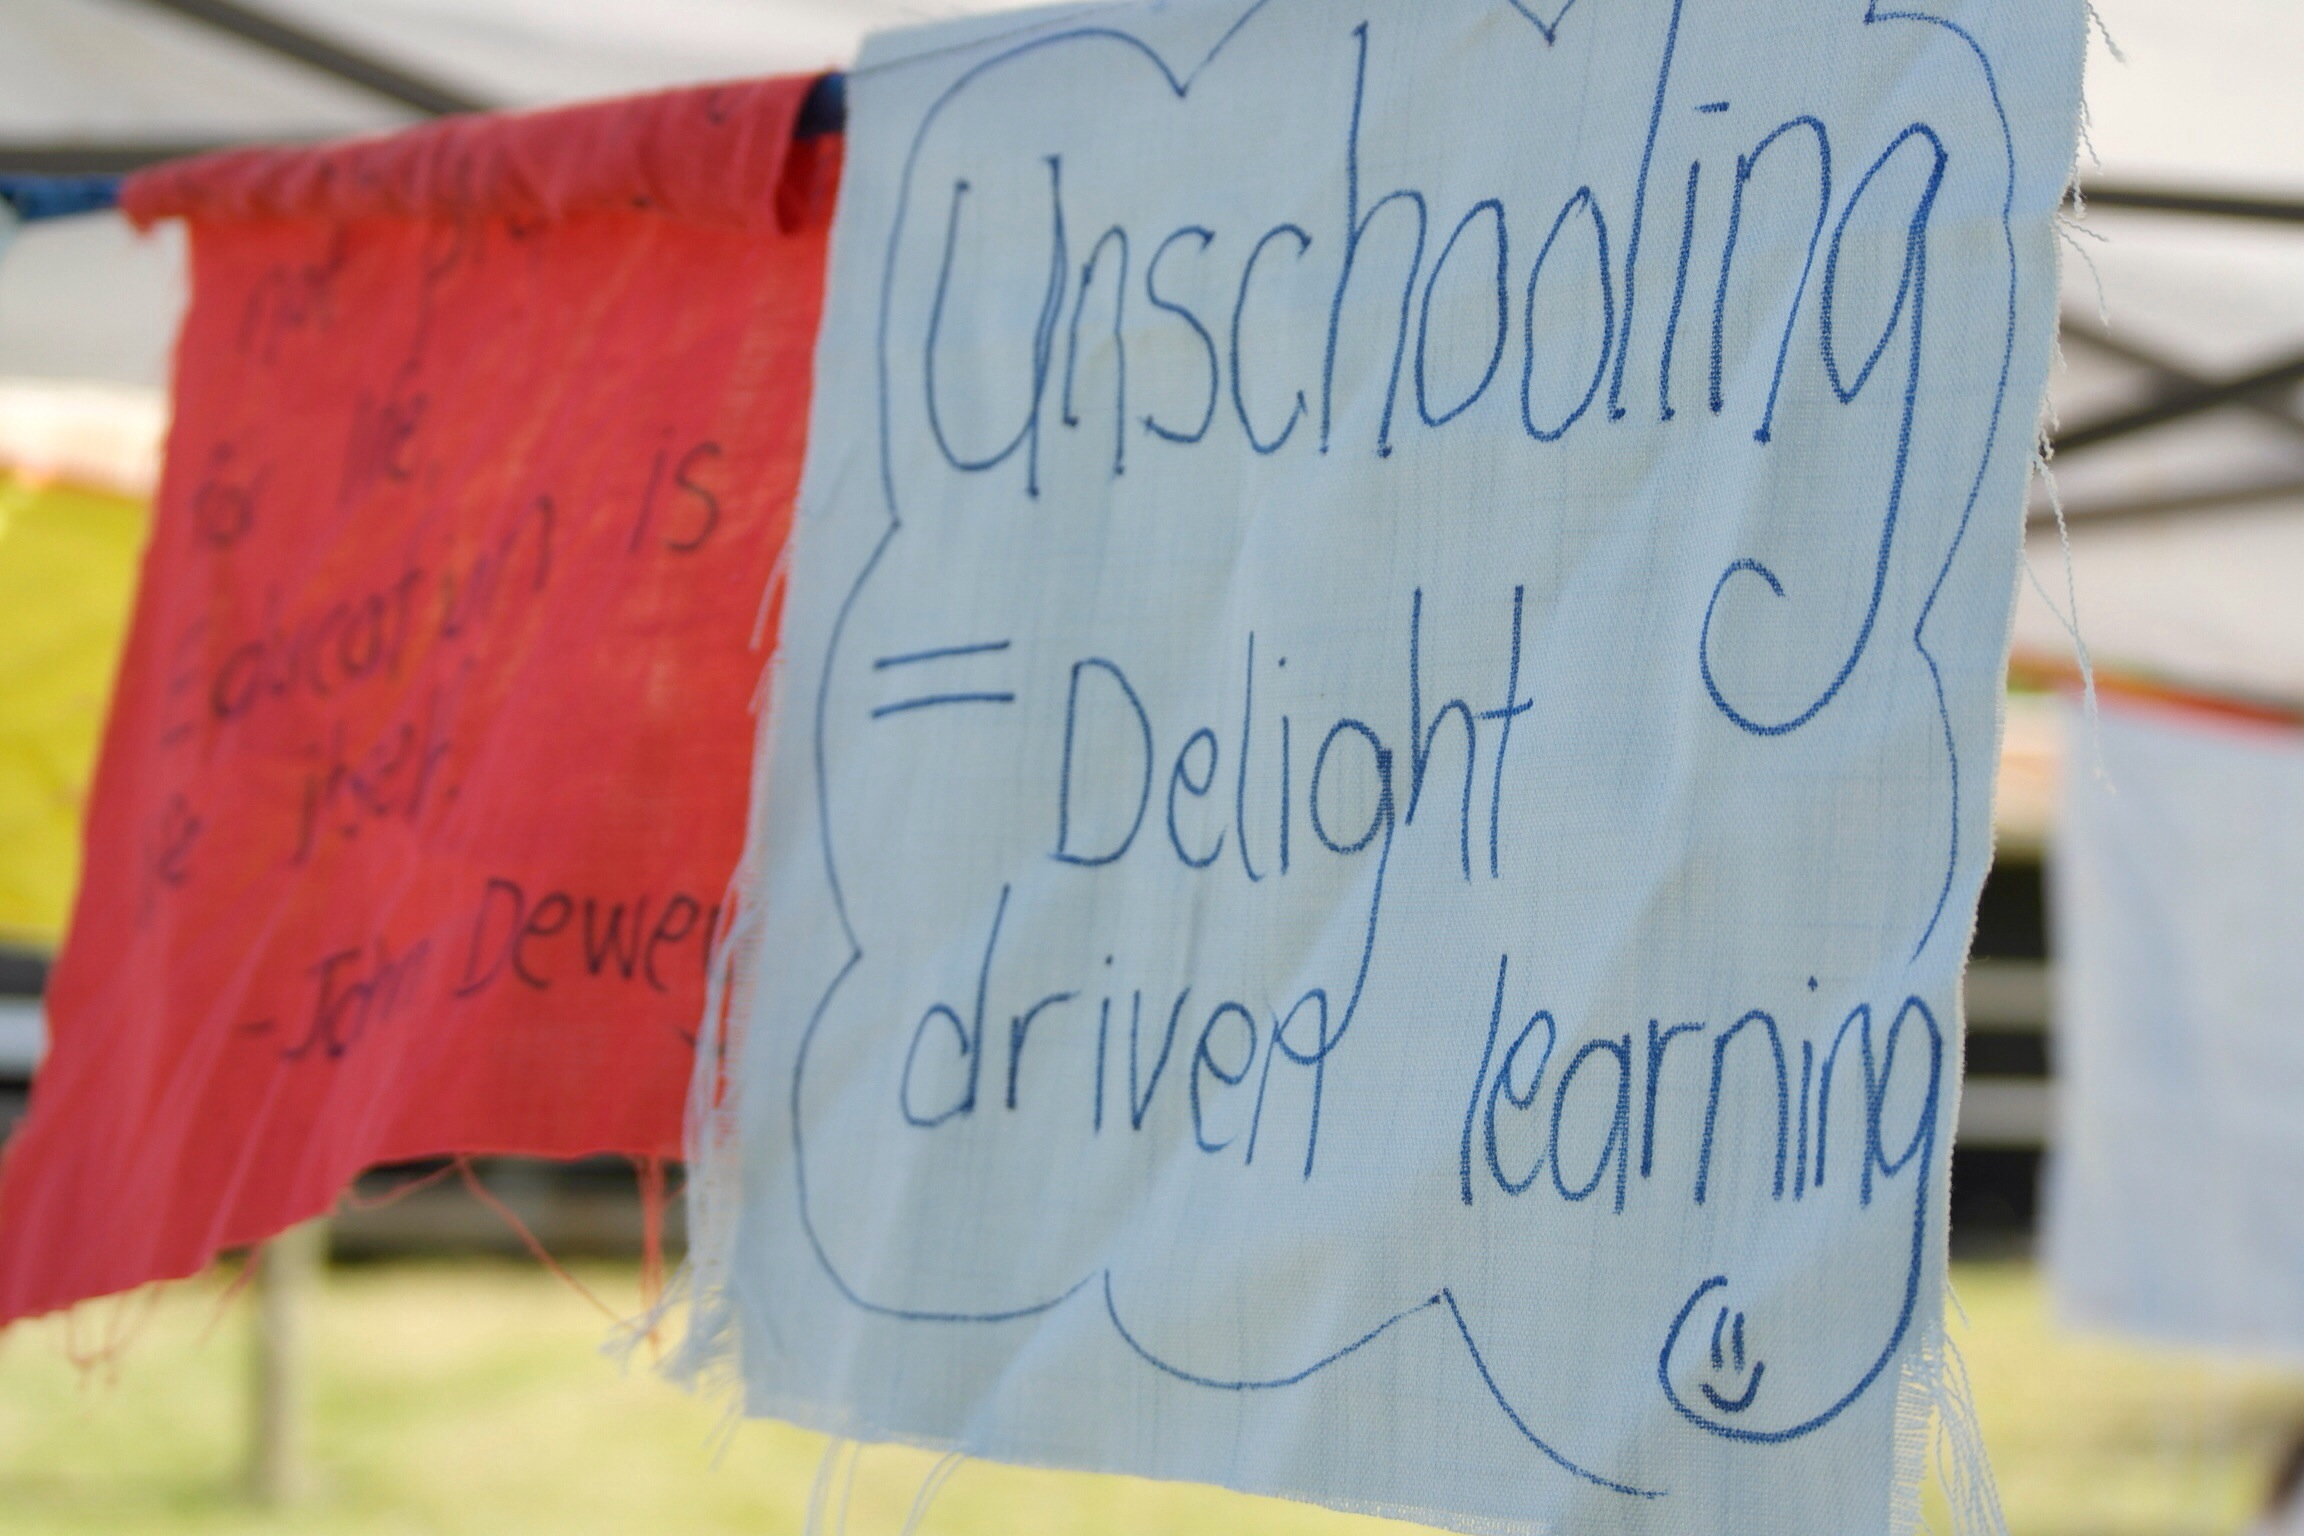 Unschooling - delight driven learning